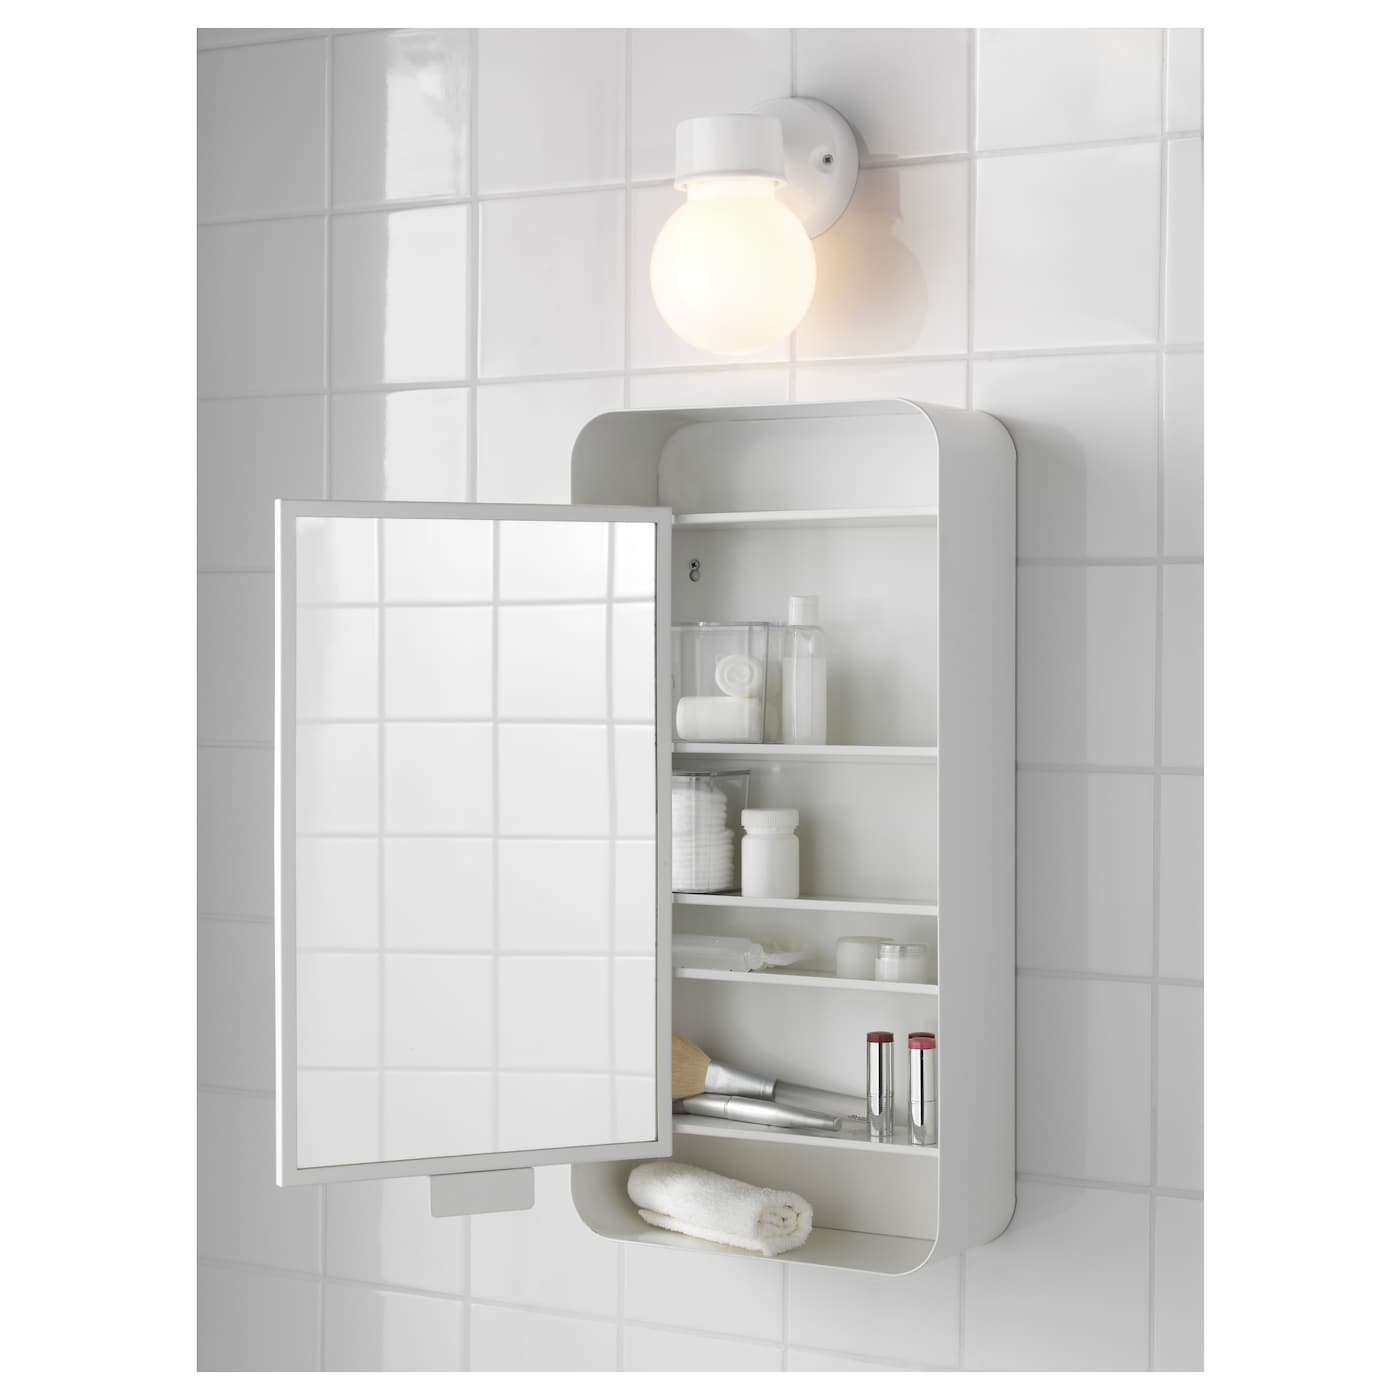 mirrored bathroom cabinets gunnern mirror cabinet with 1 door white 31x62 cm ikea 23387